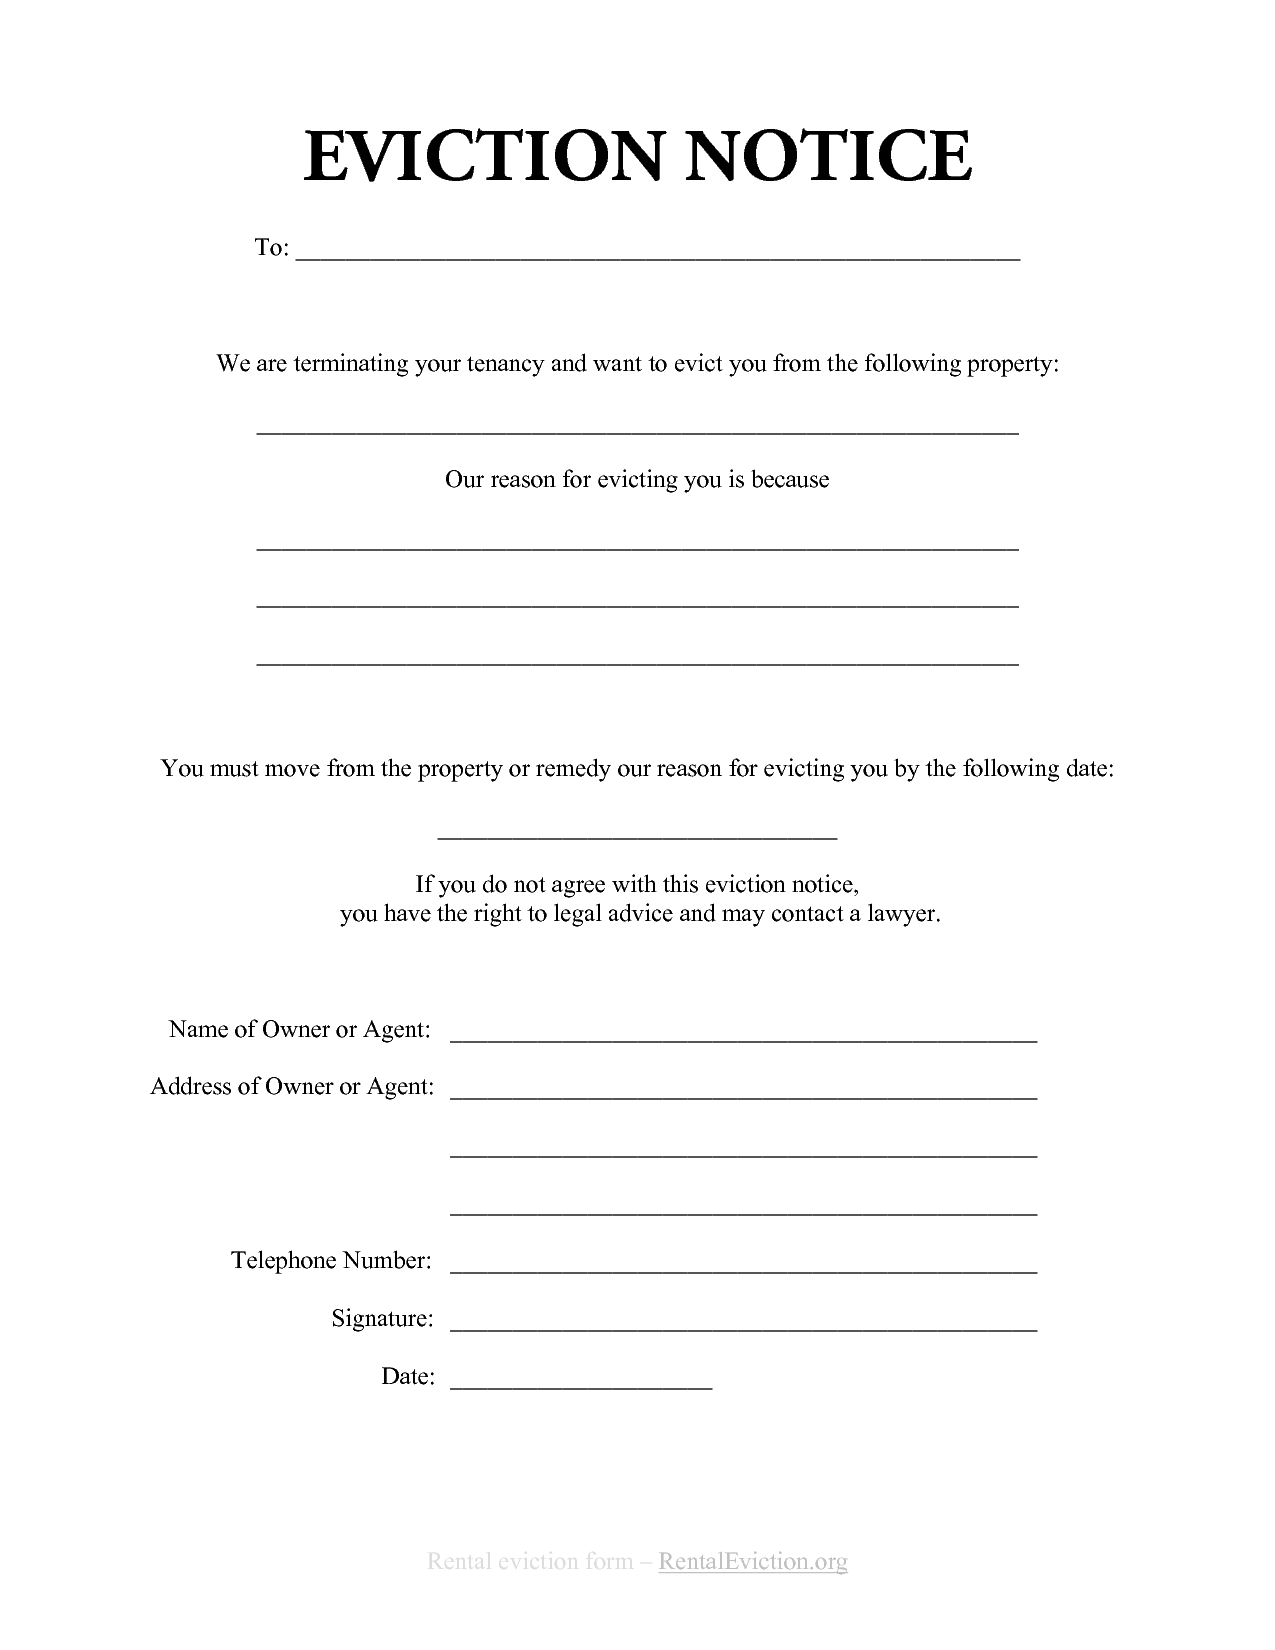 Free eviction notice template trattorialeondoro free eviction notice template thecheapjerseys Image collections